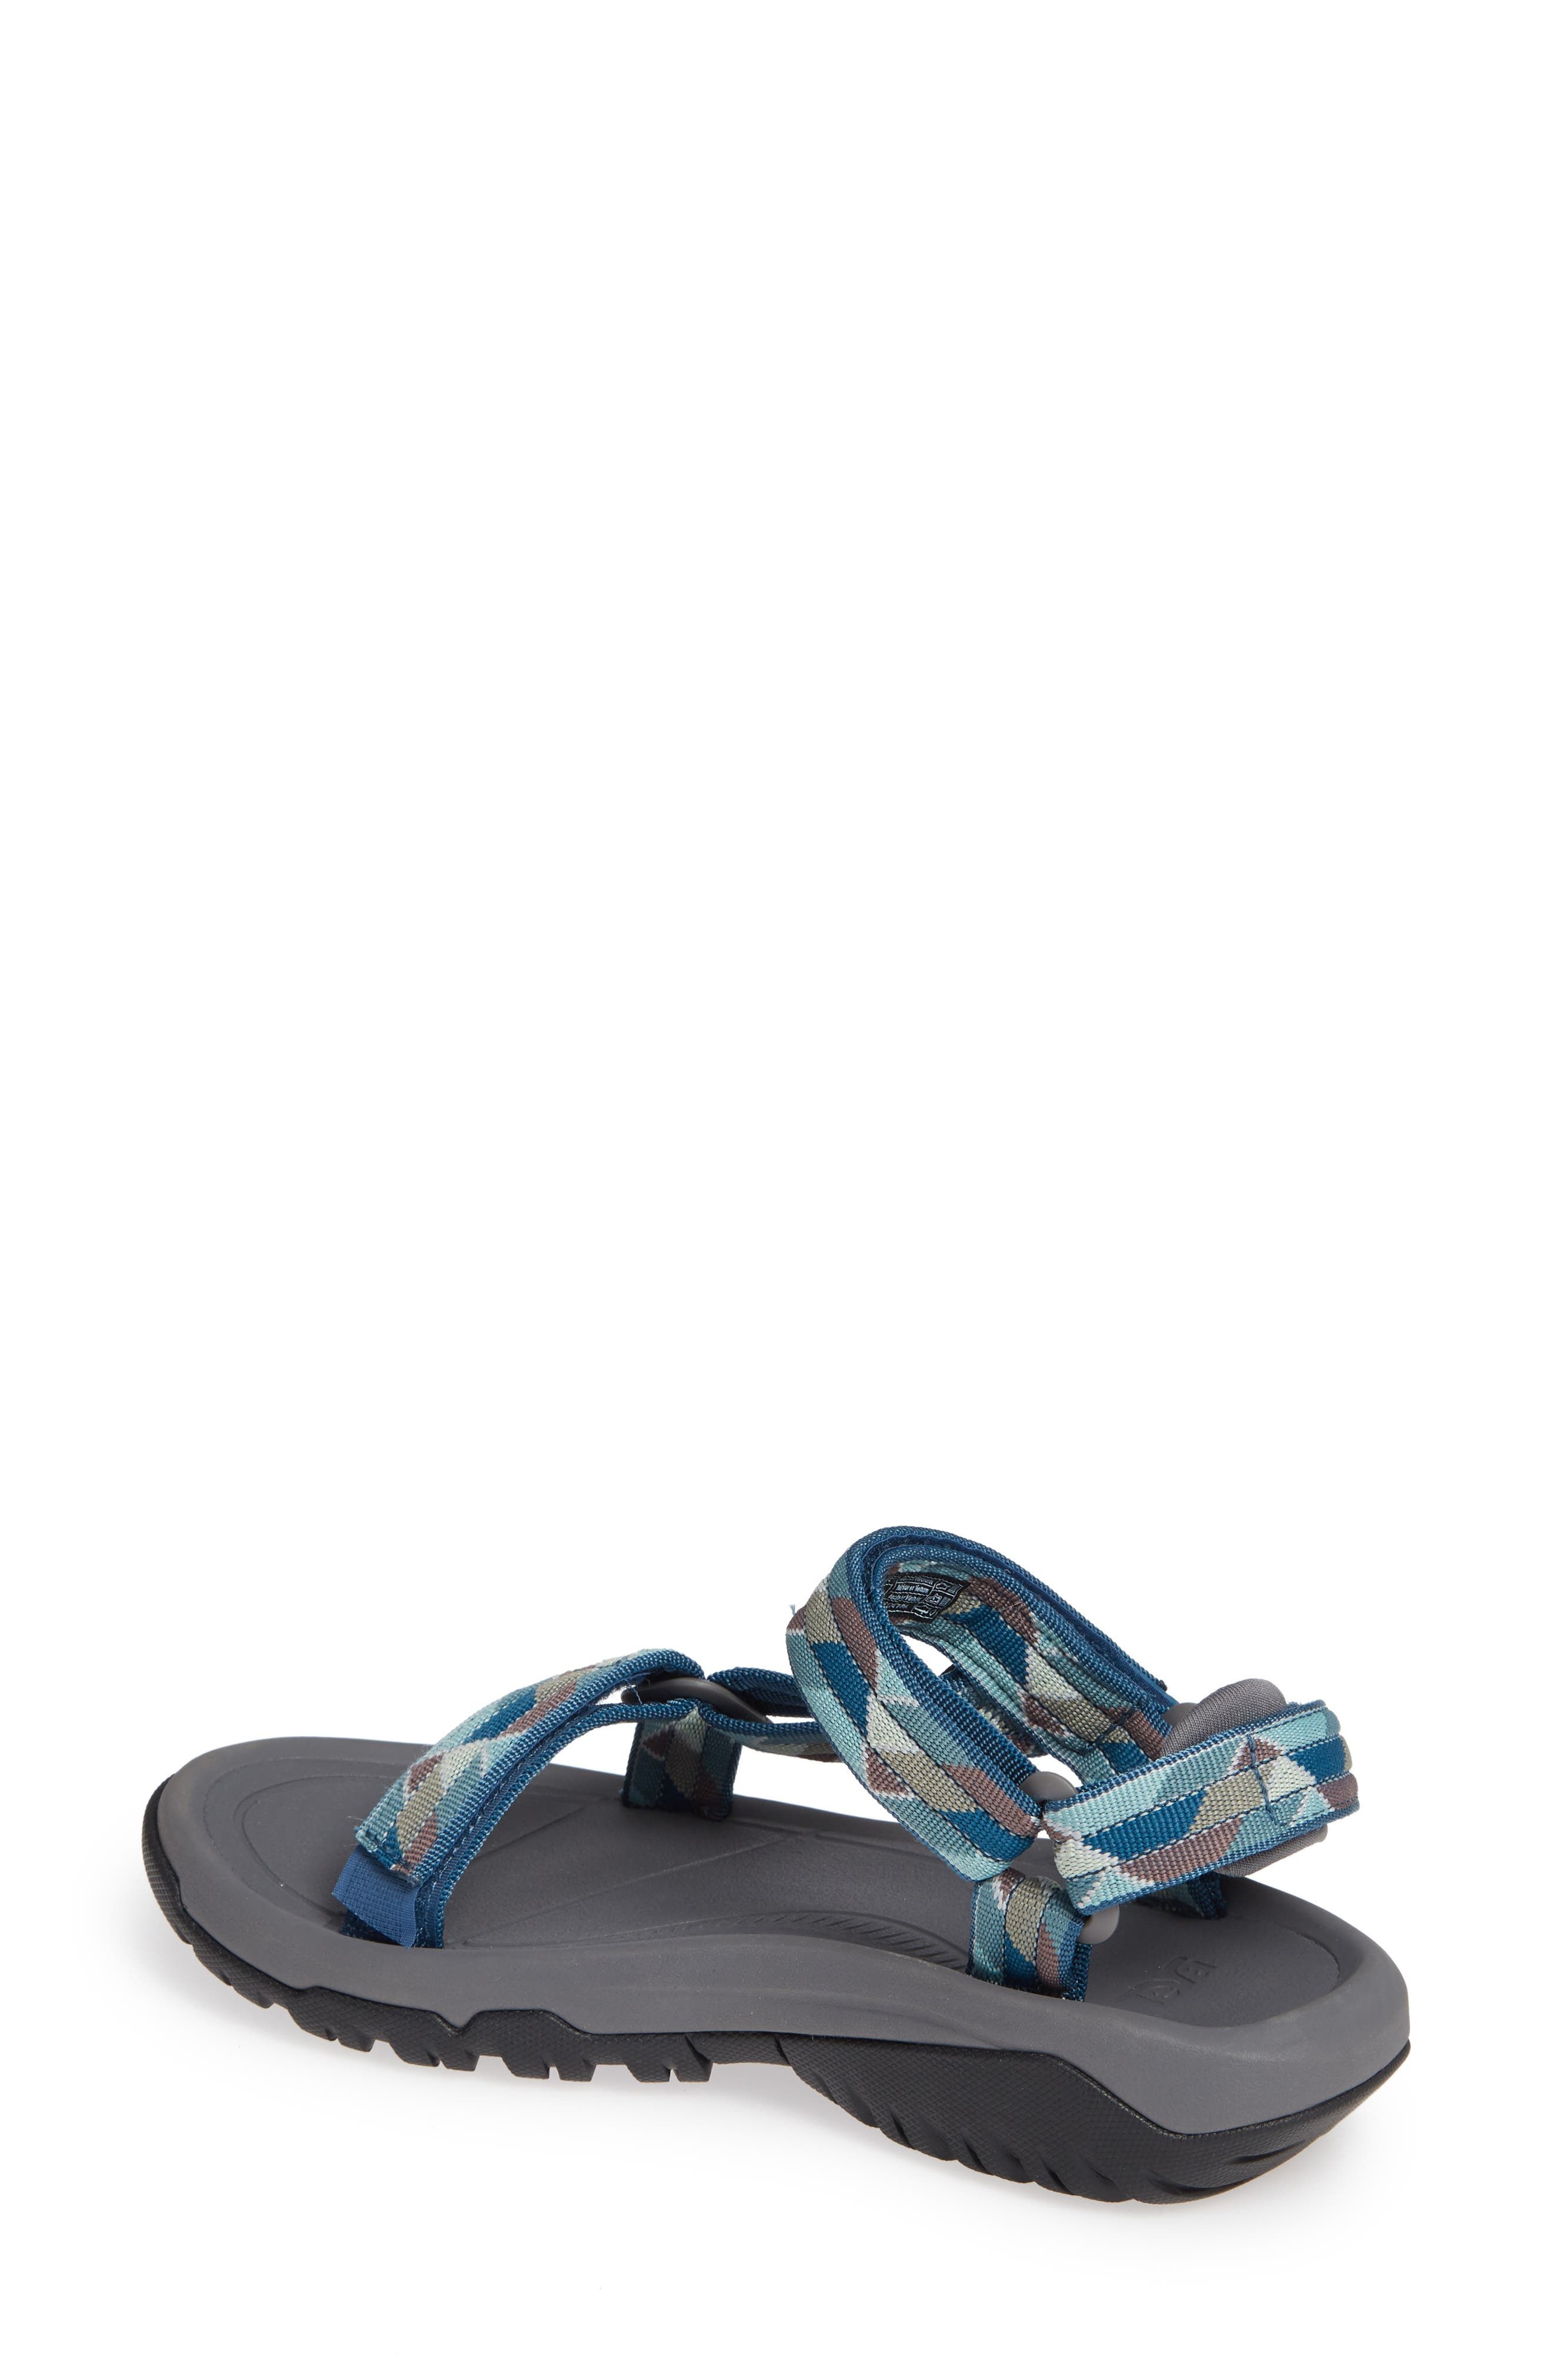 Hurricane XLT 2 Sandal,                             Alternate thumbnail 2, color,                             BLUE FABRIC